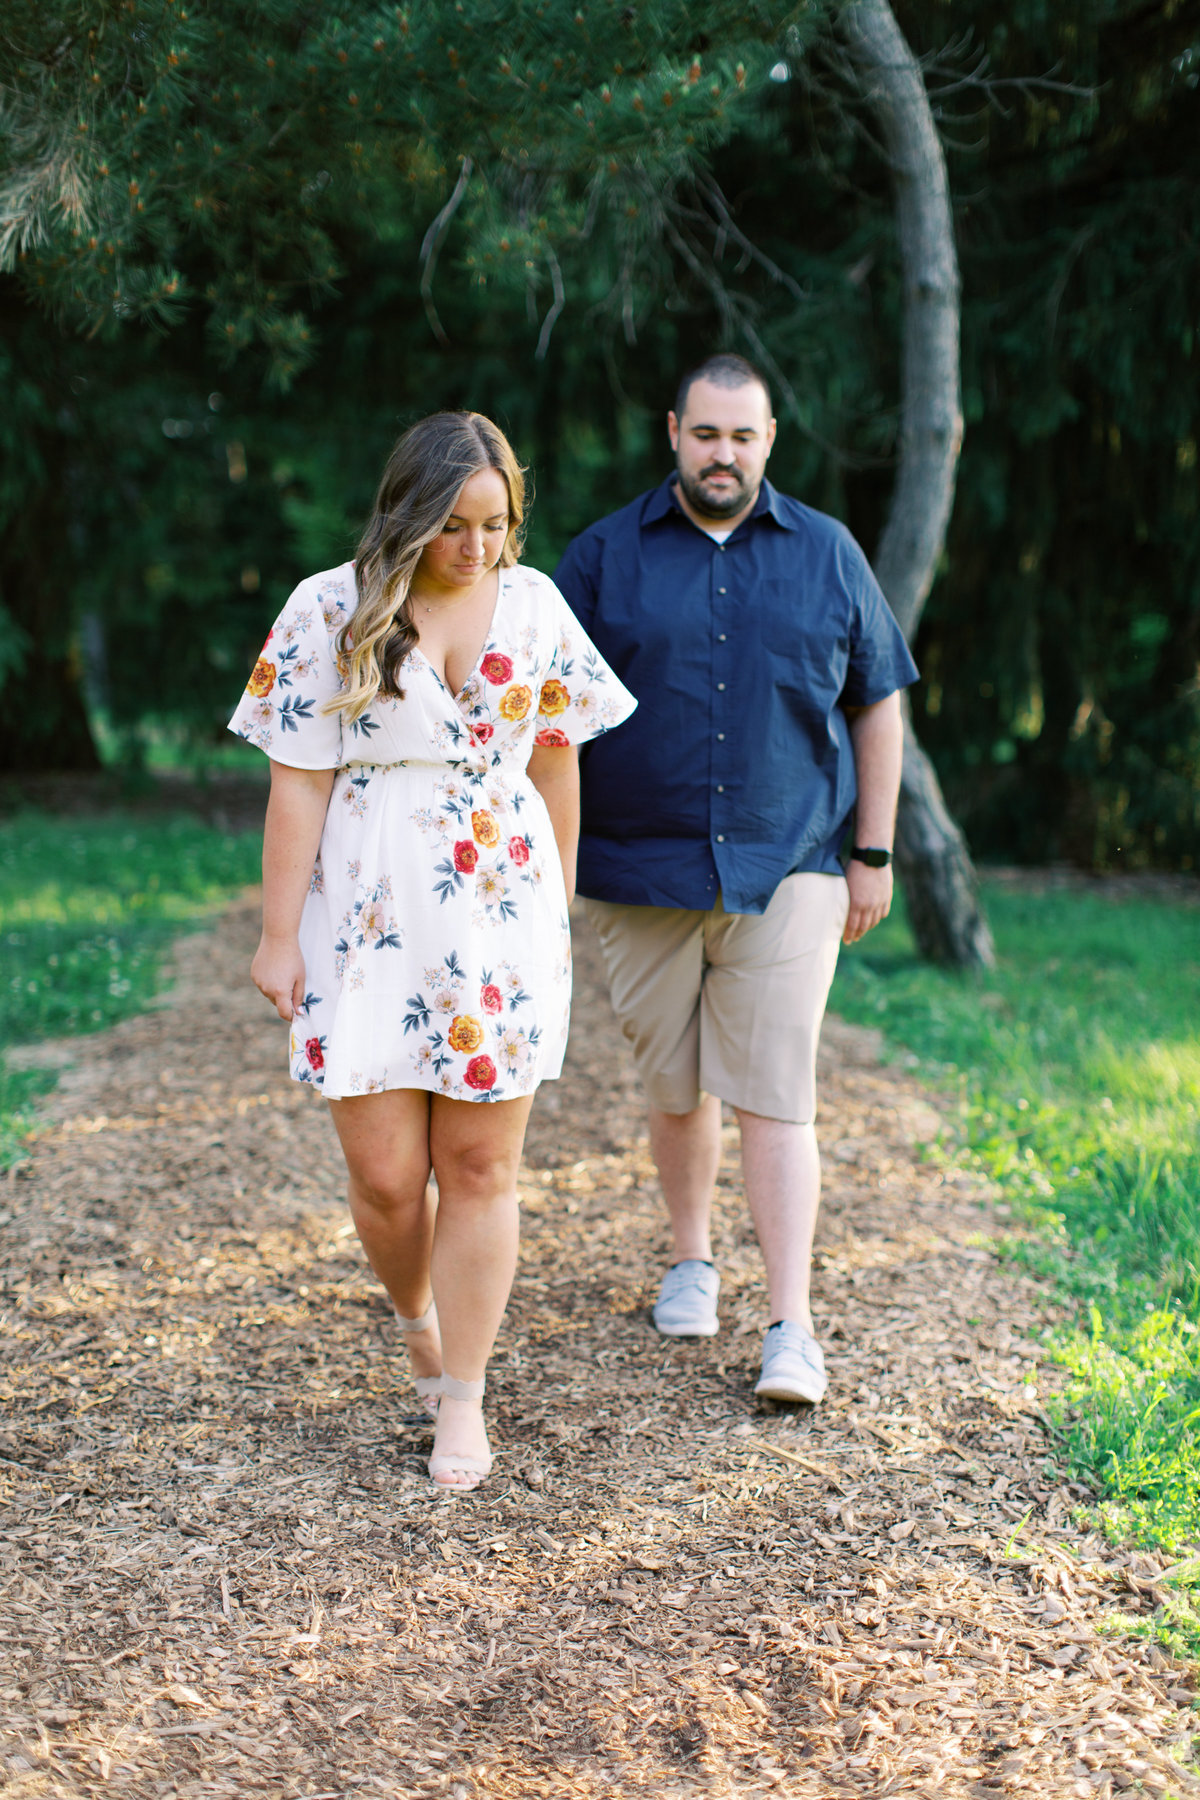 LizAndy_Engagement_June112019_59